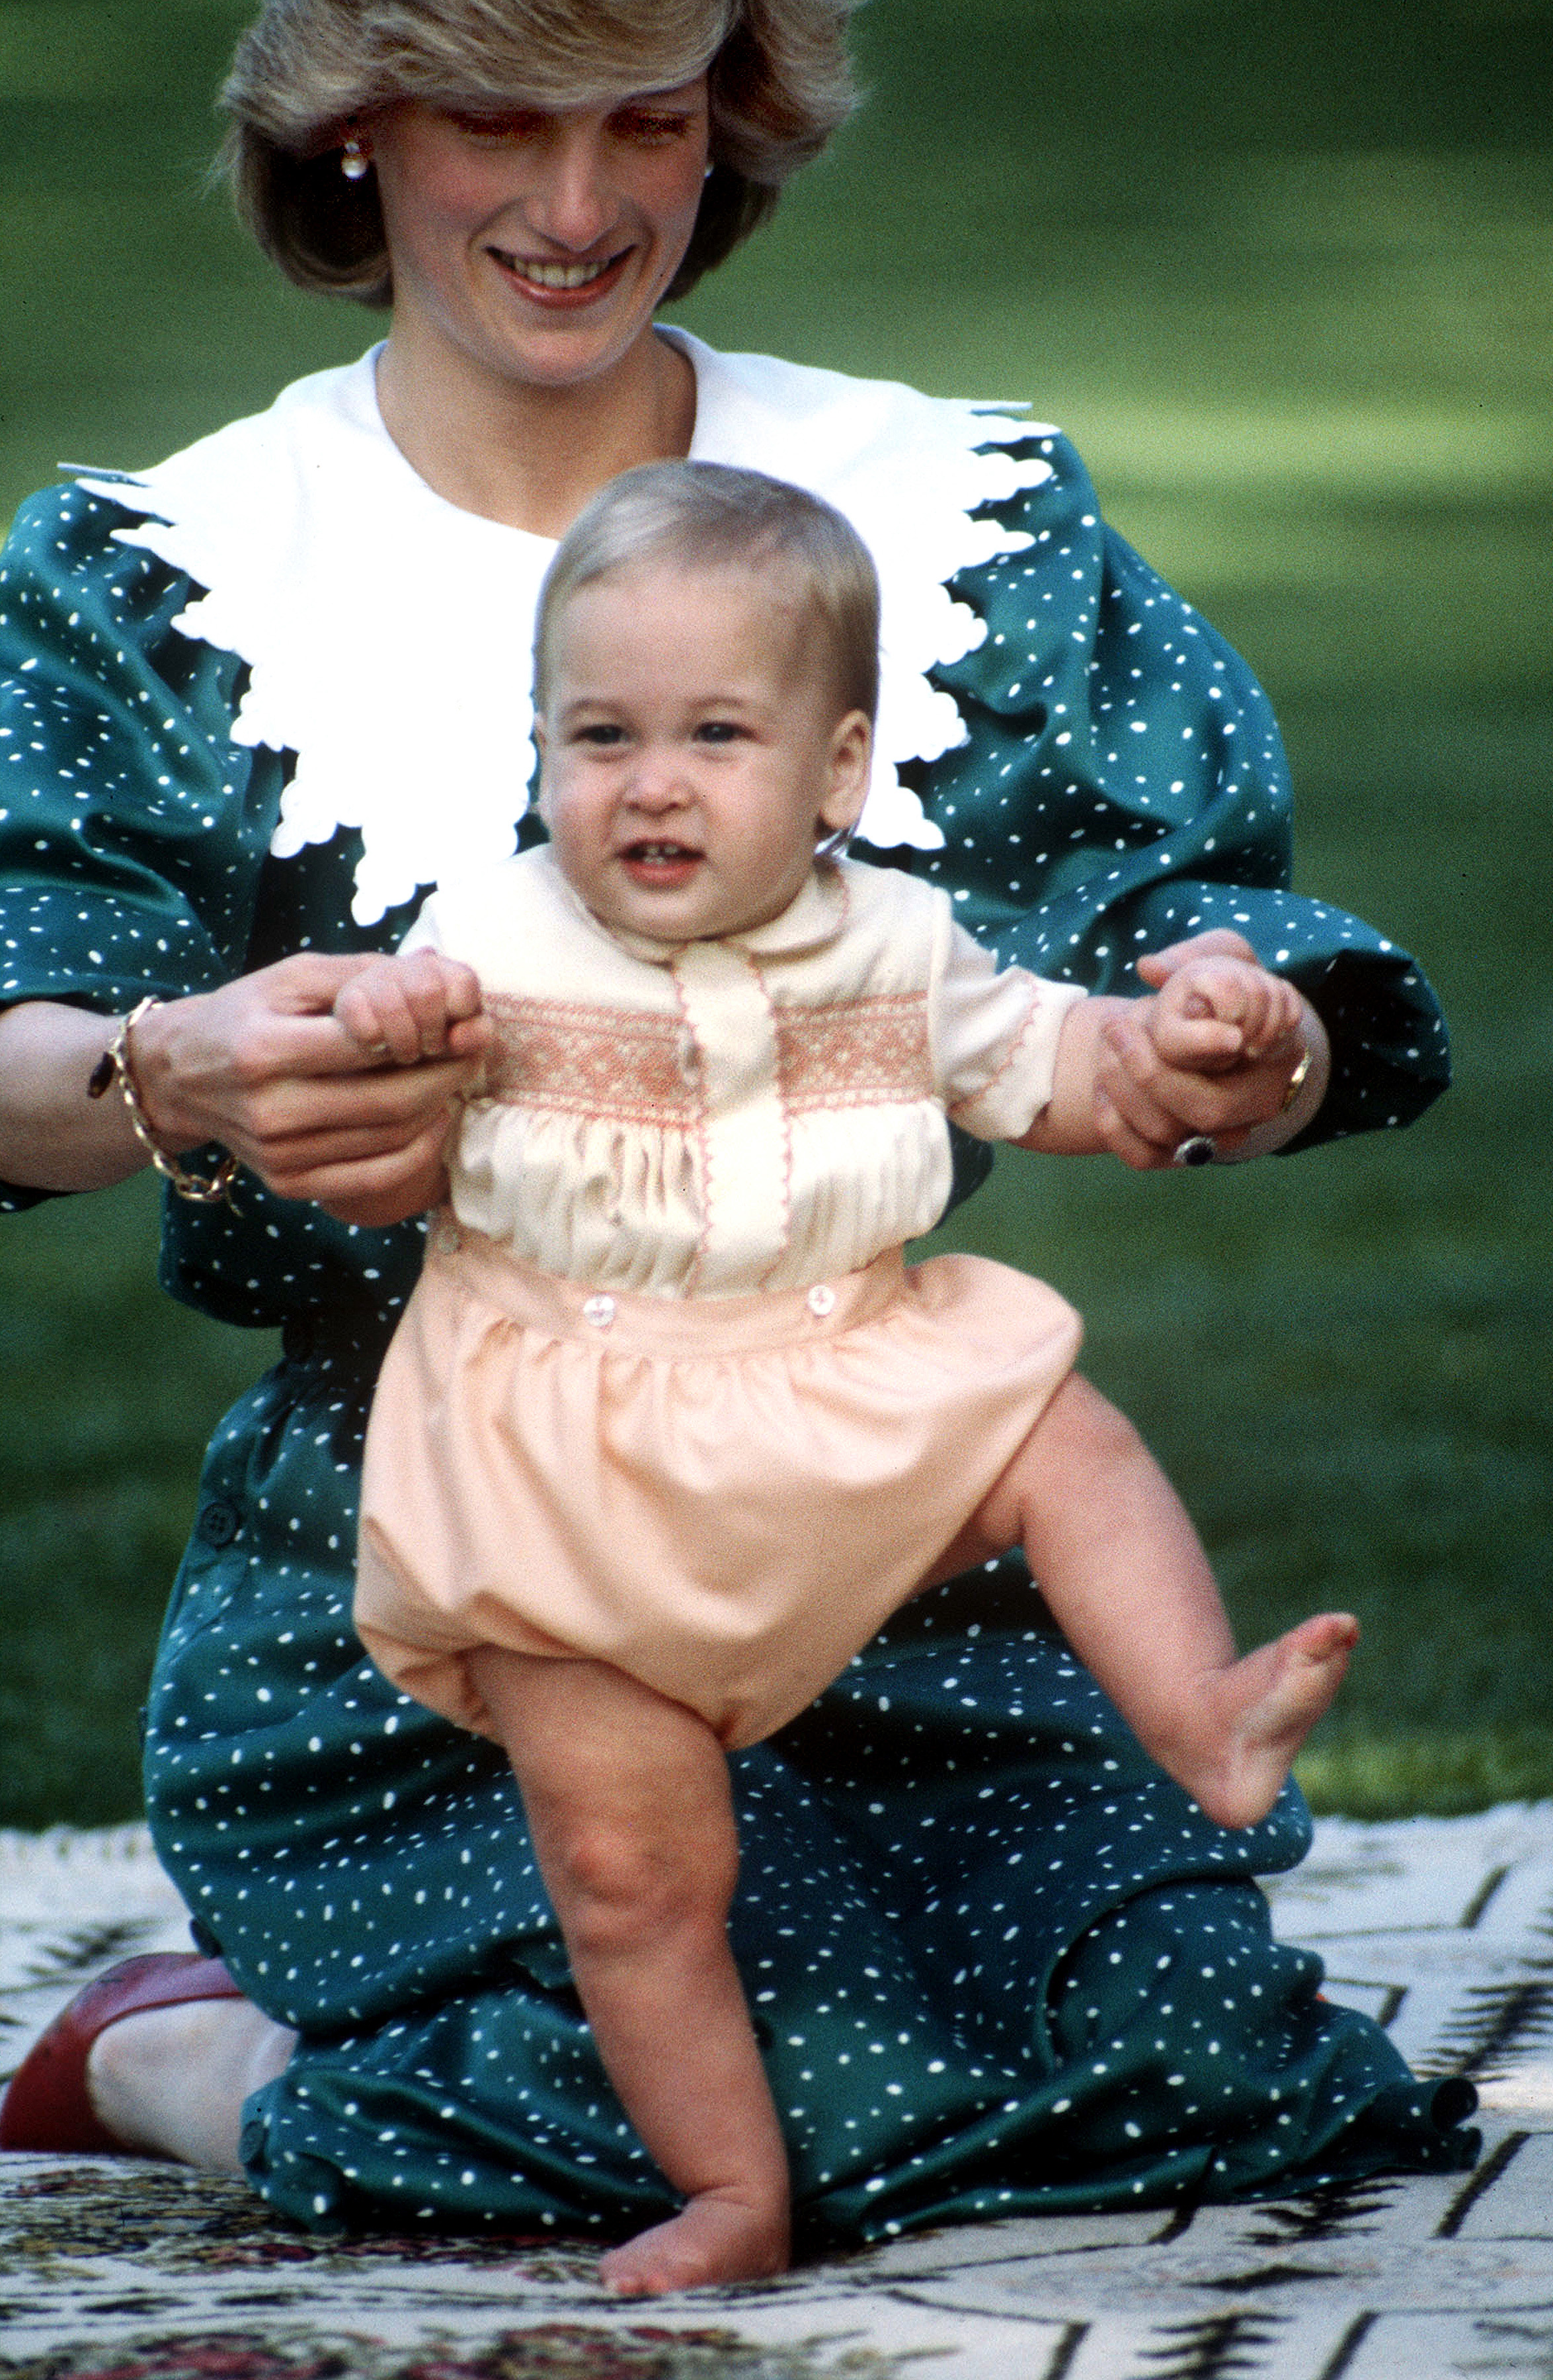 Princess Diana pictured in the grounds of Government House in Auckland, New Zealand a young, and agile, Prince William on April 23, 1983.